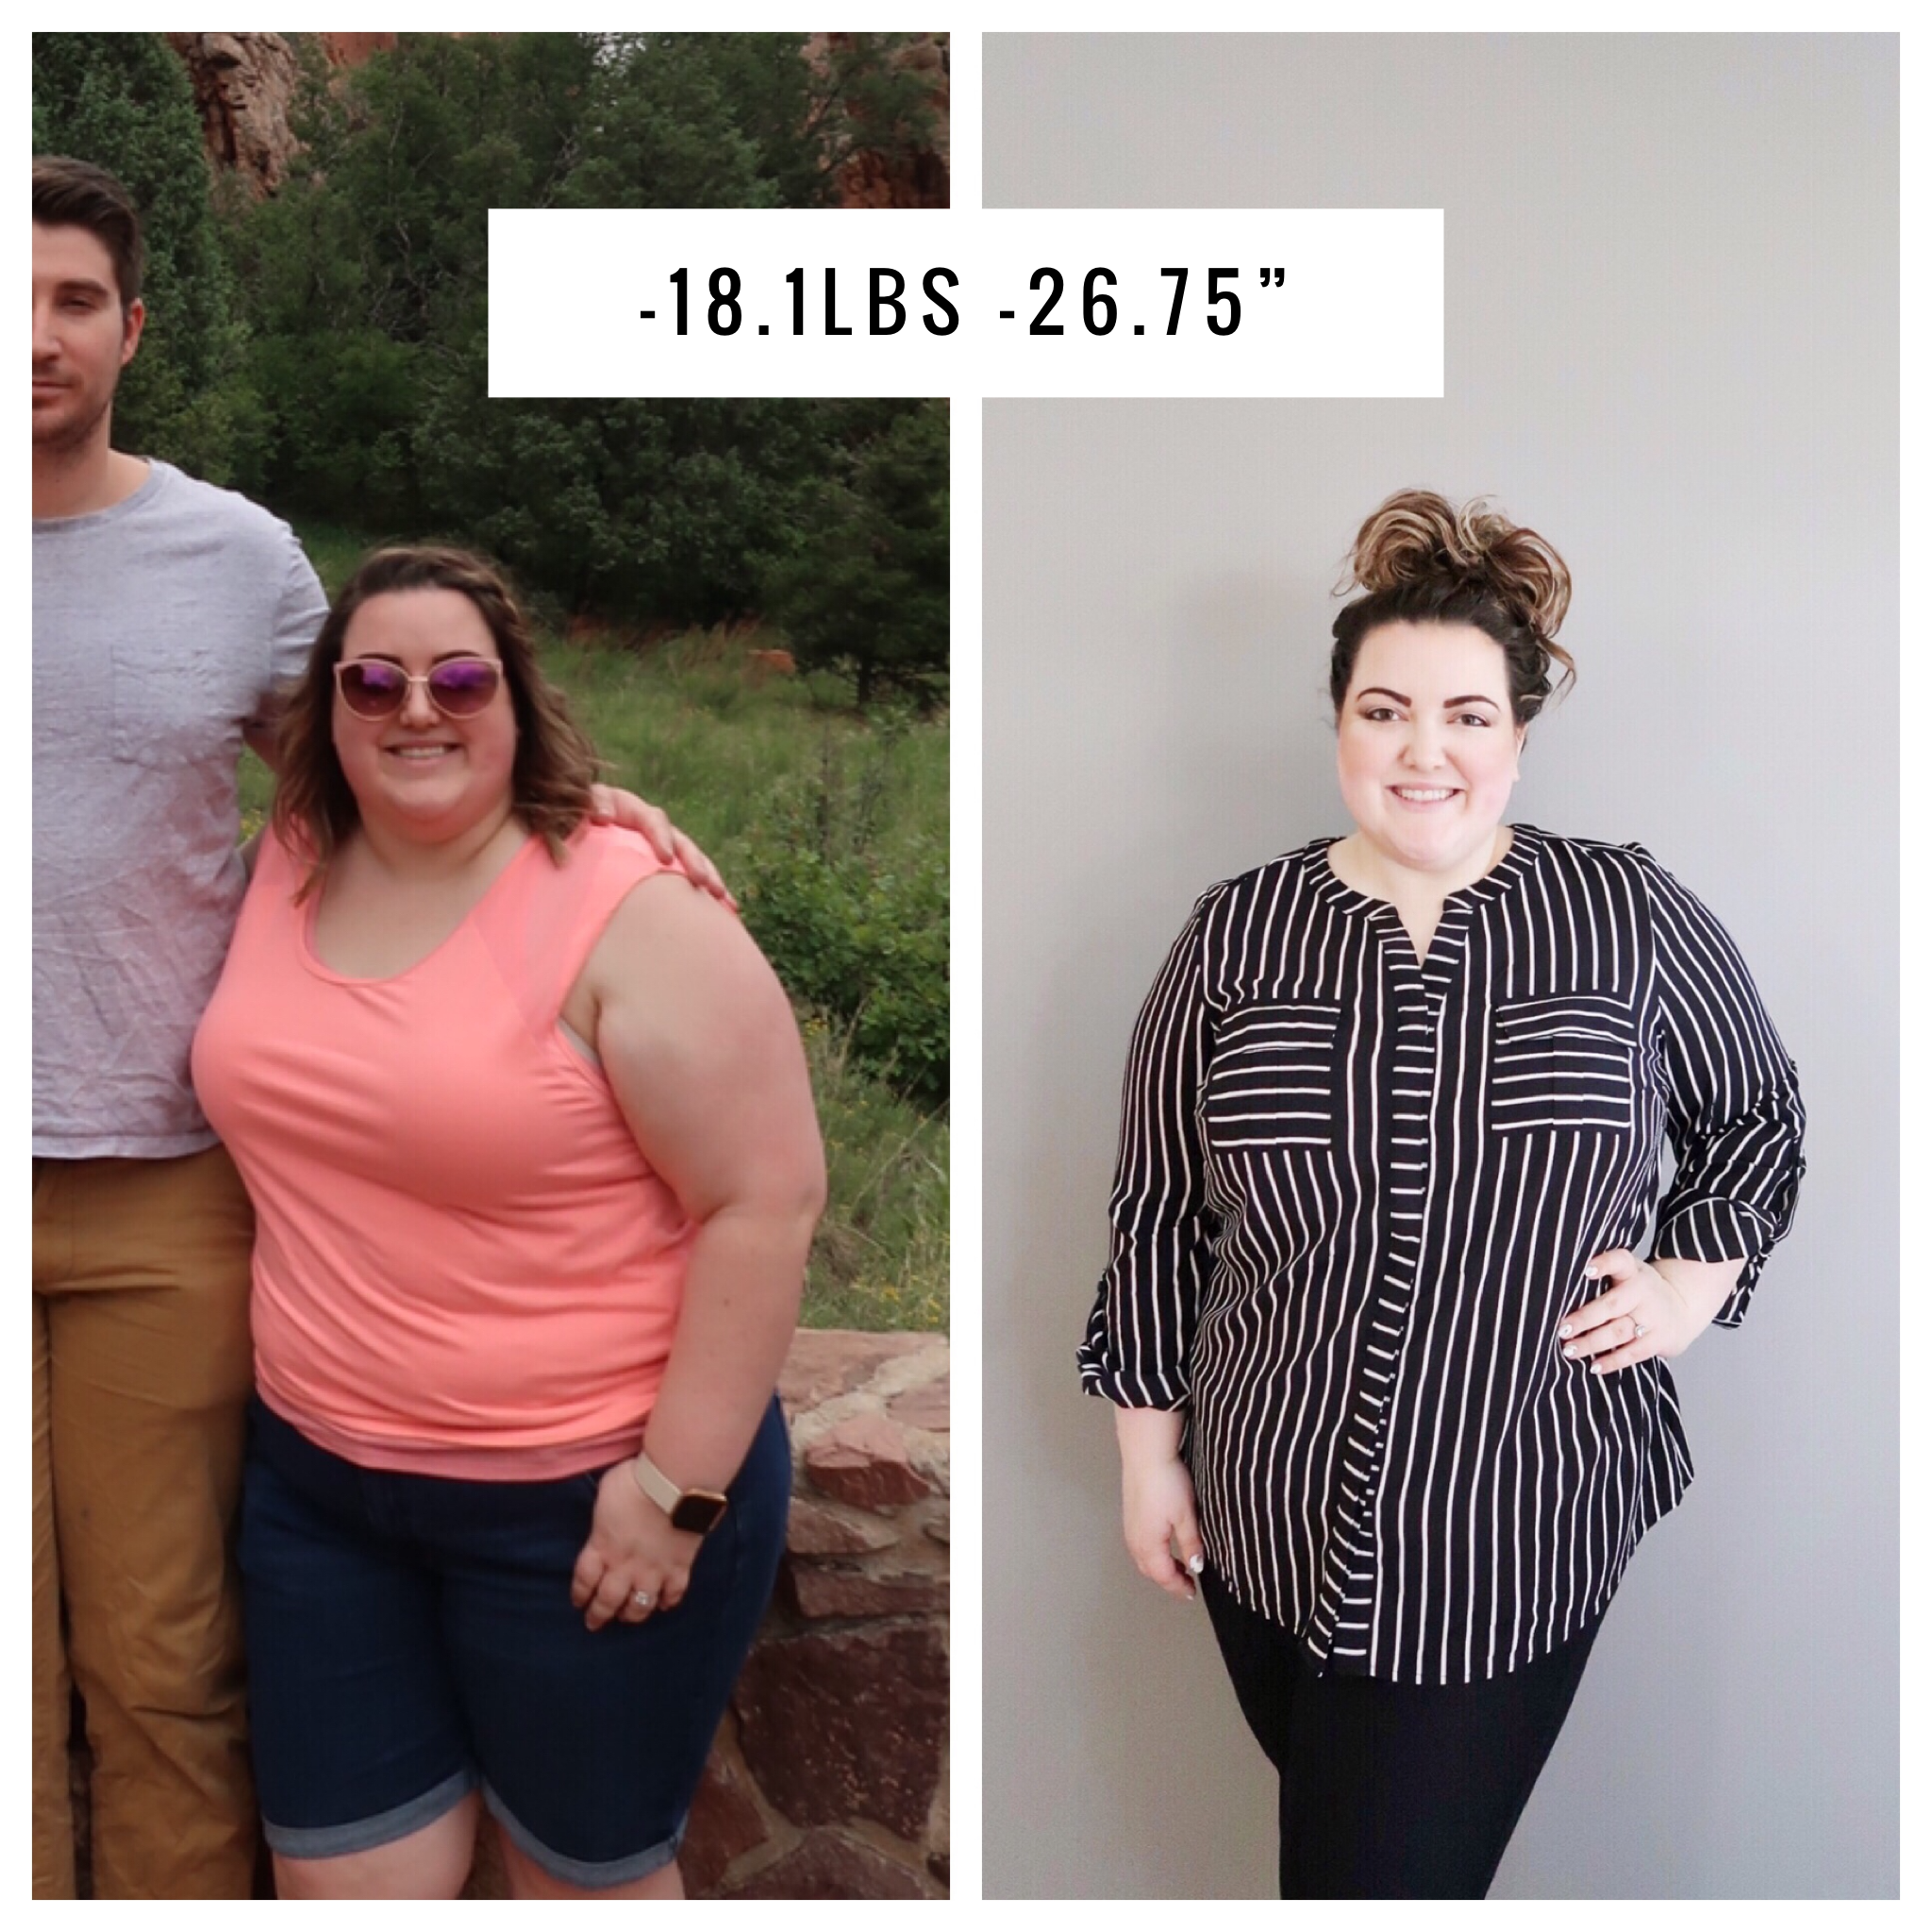 See How Abagail Lost -18.1 Pounds and -26.75 Inches in 1 Month